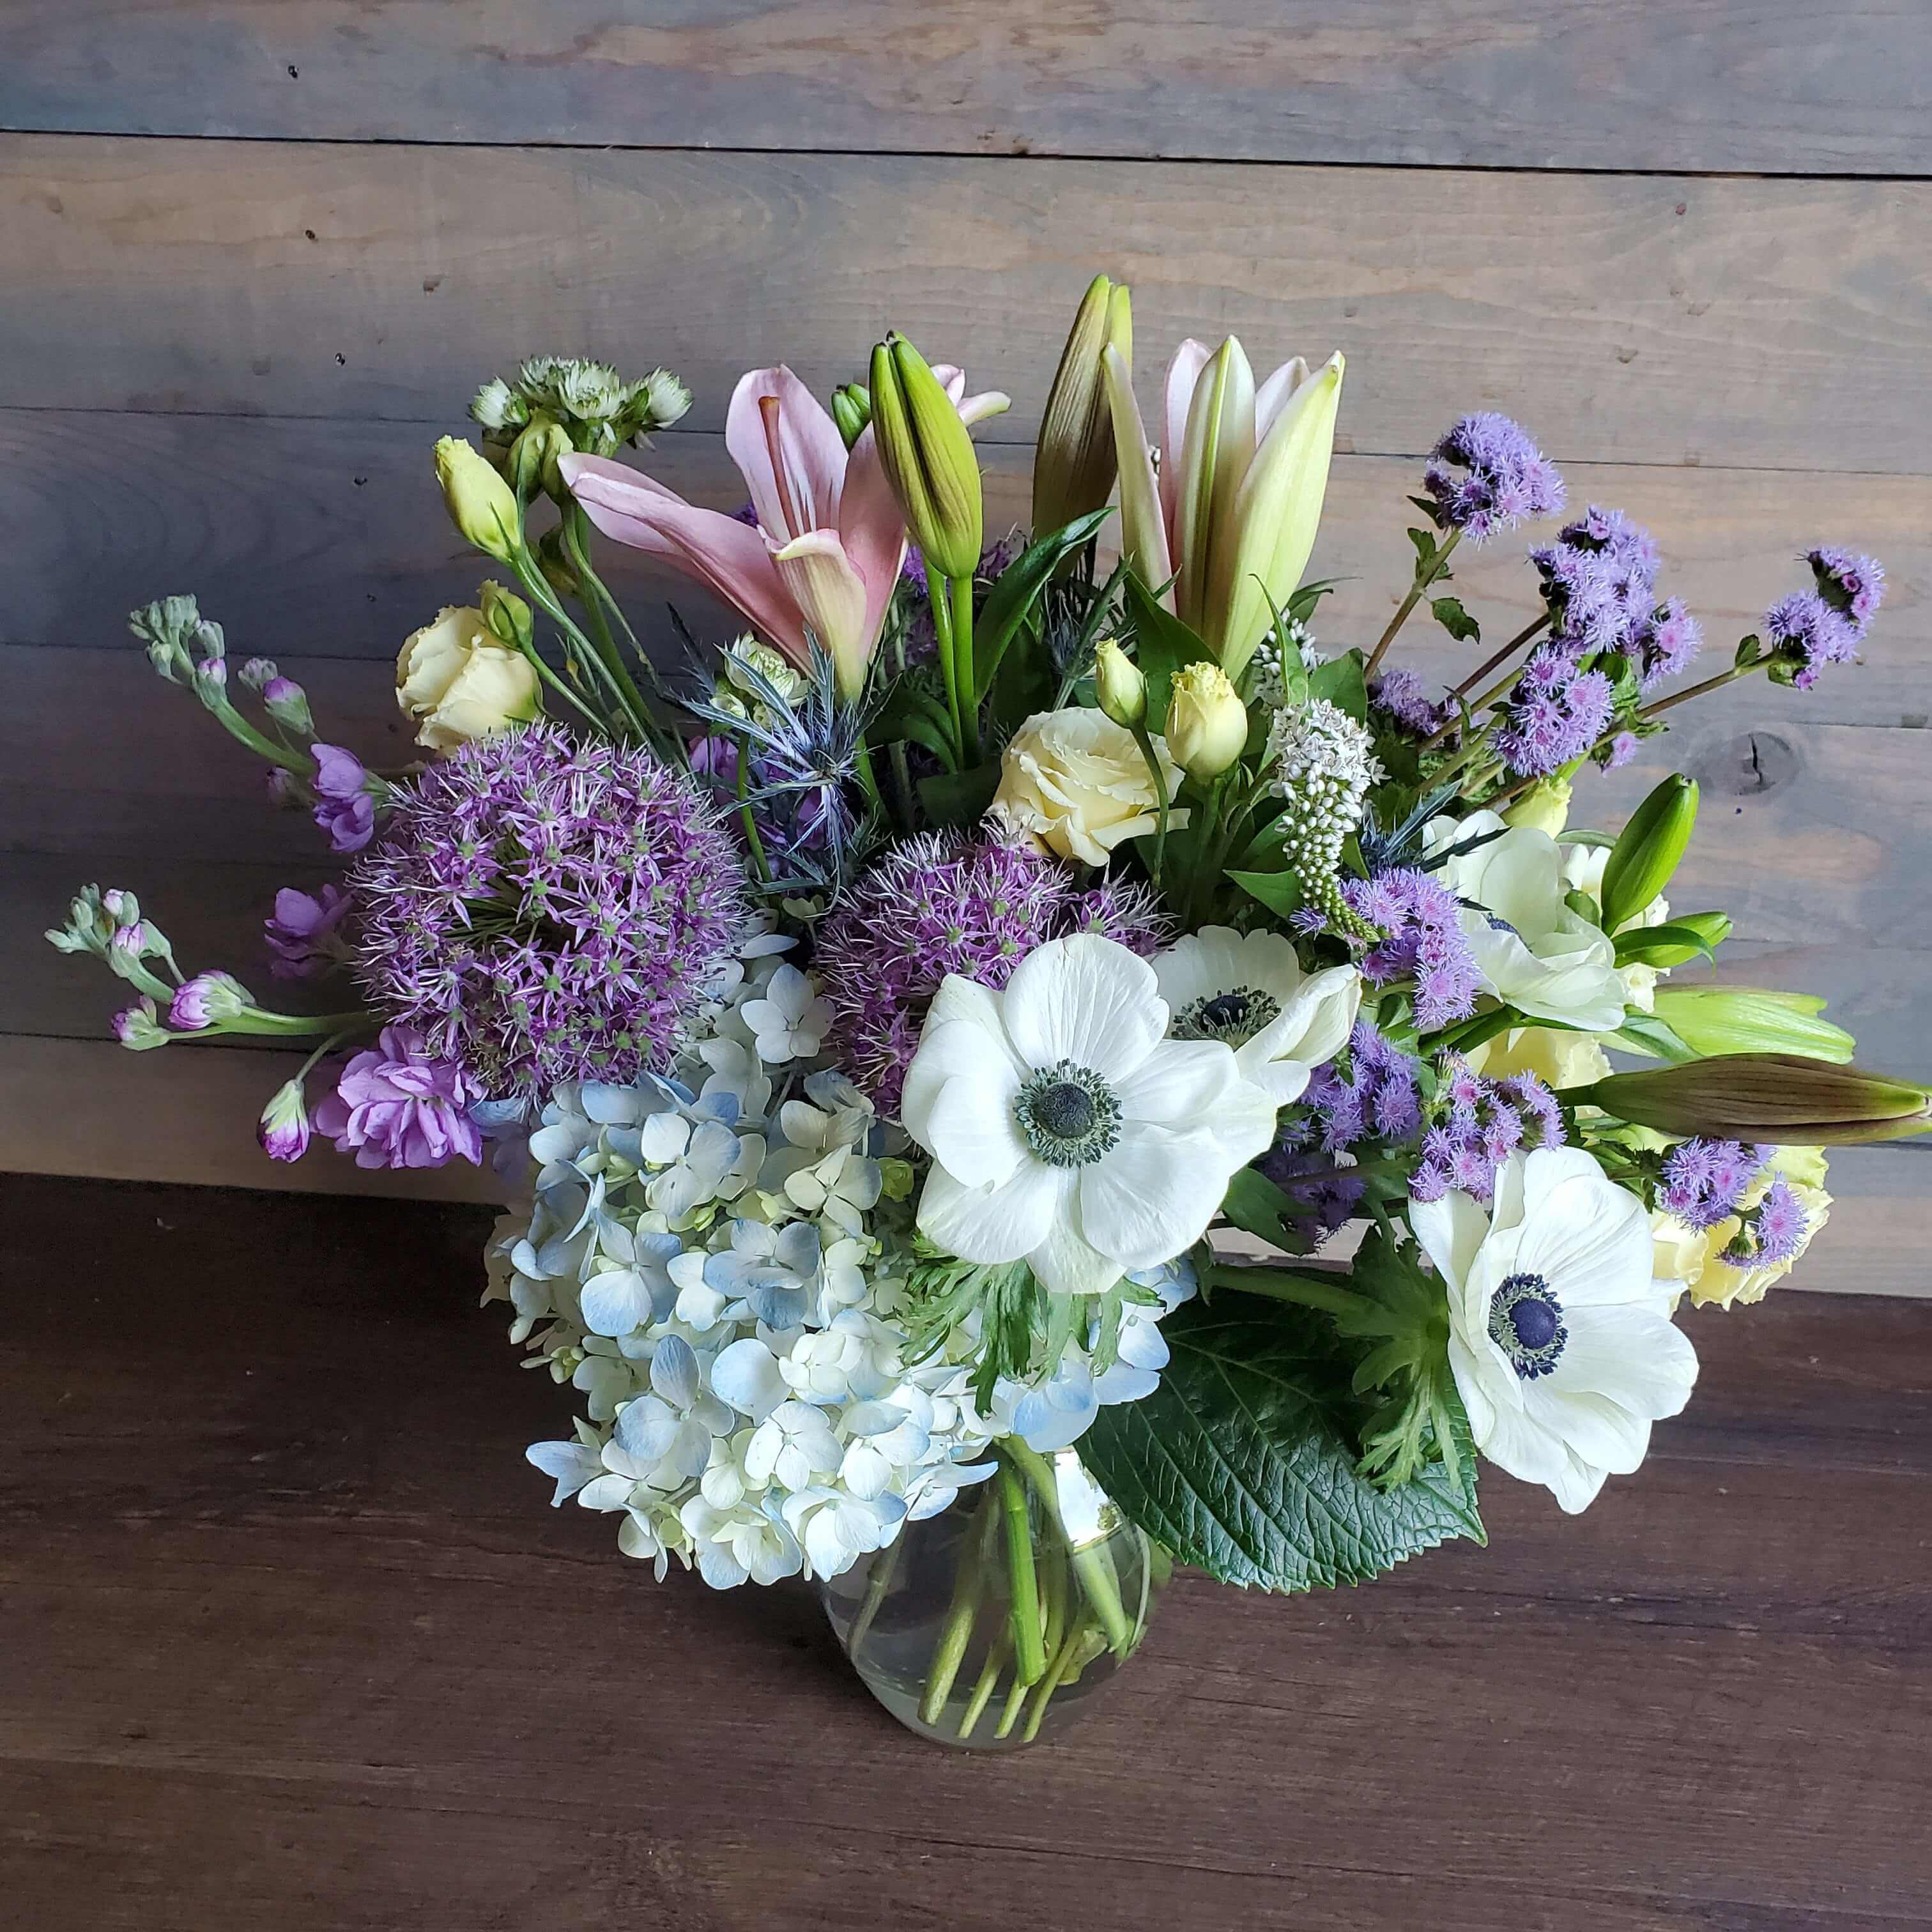 Traditional floral design in blues, white and lavender